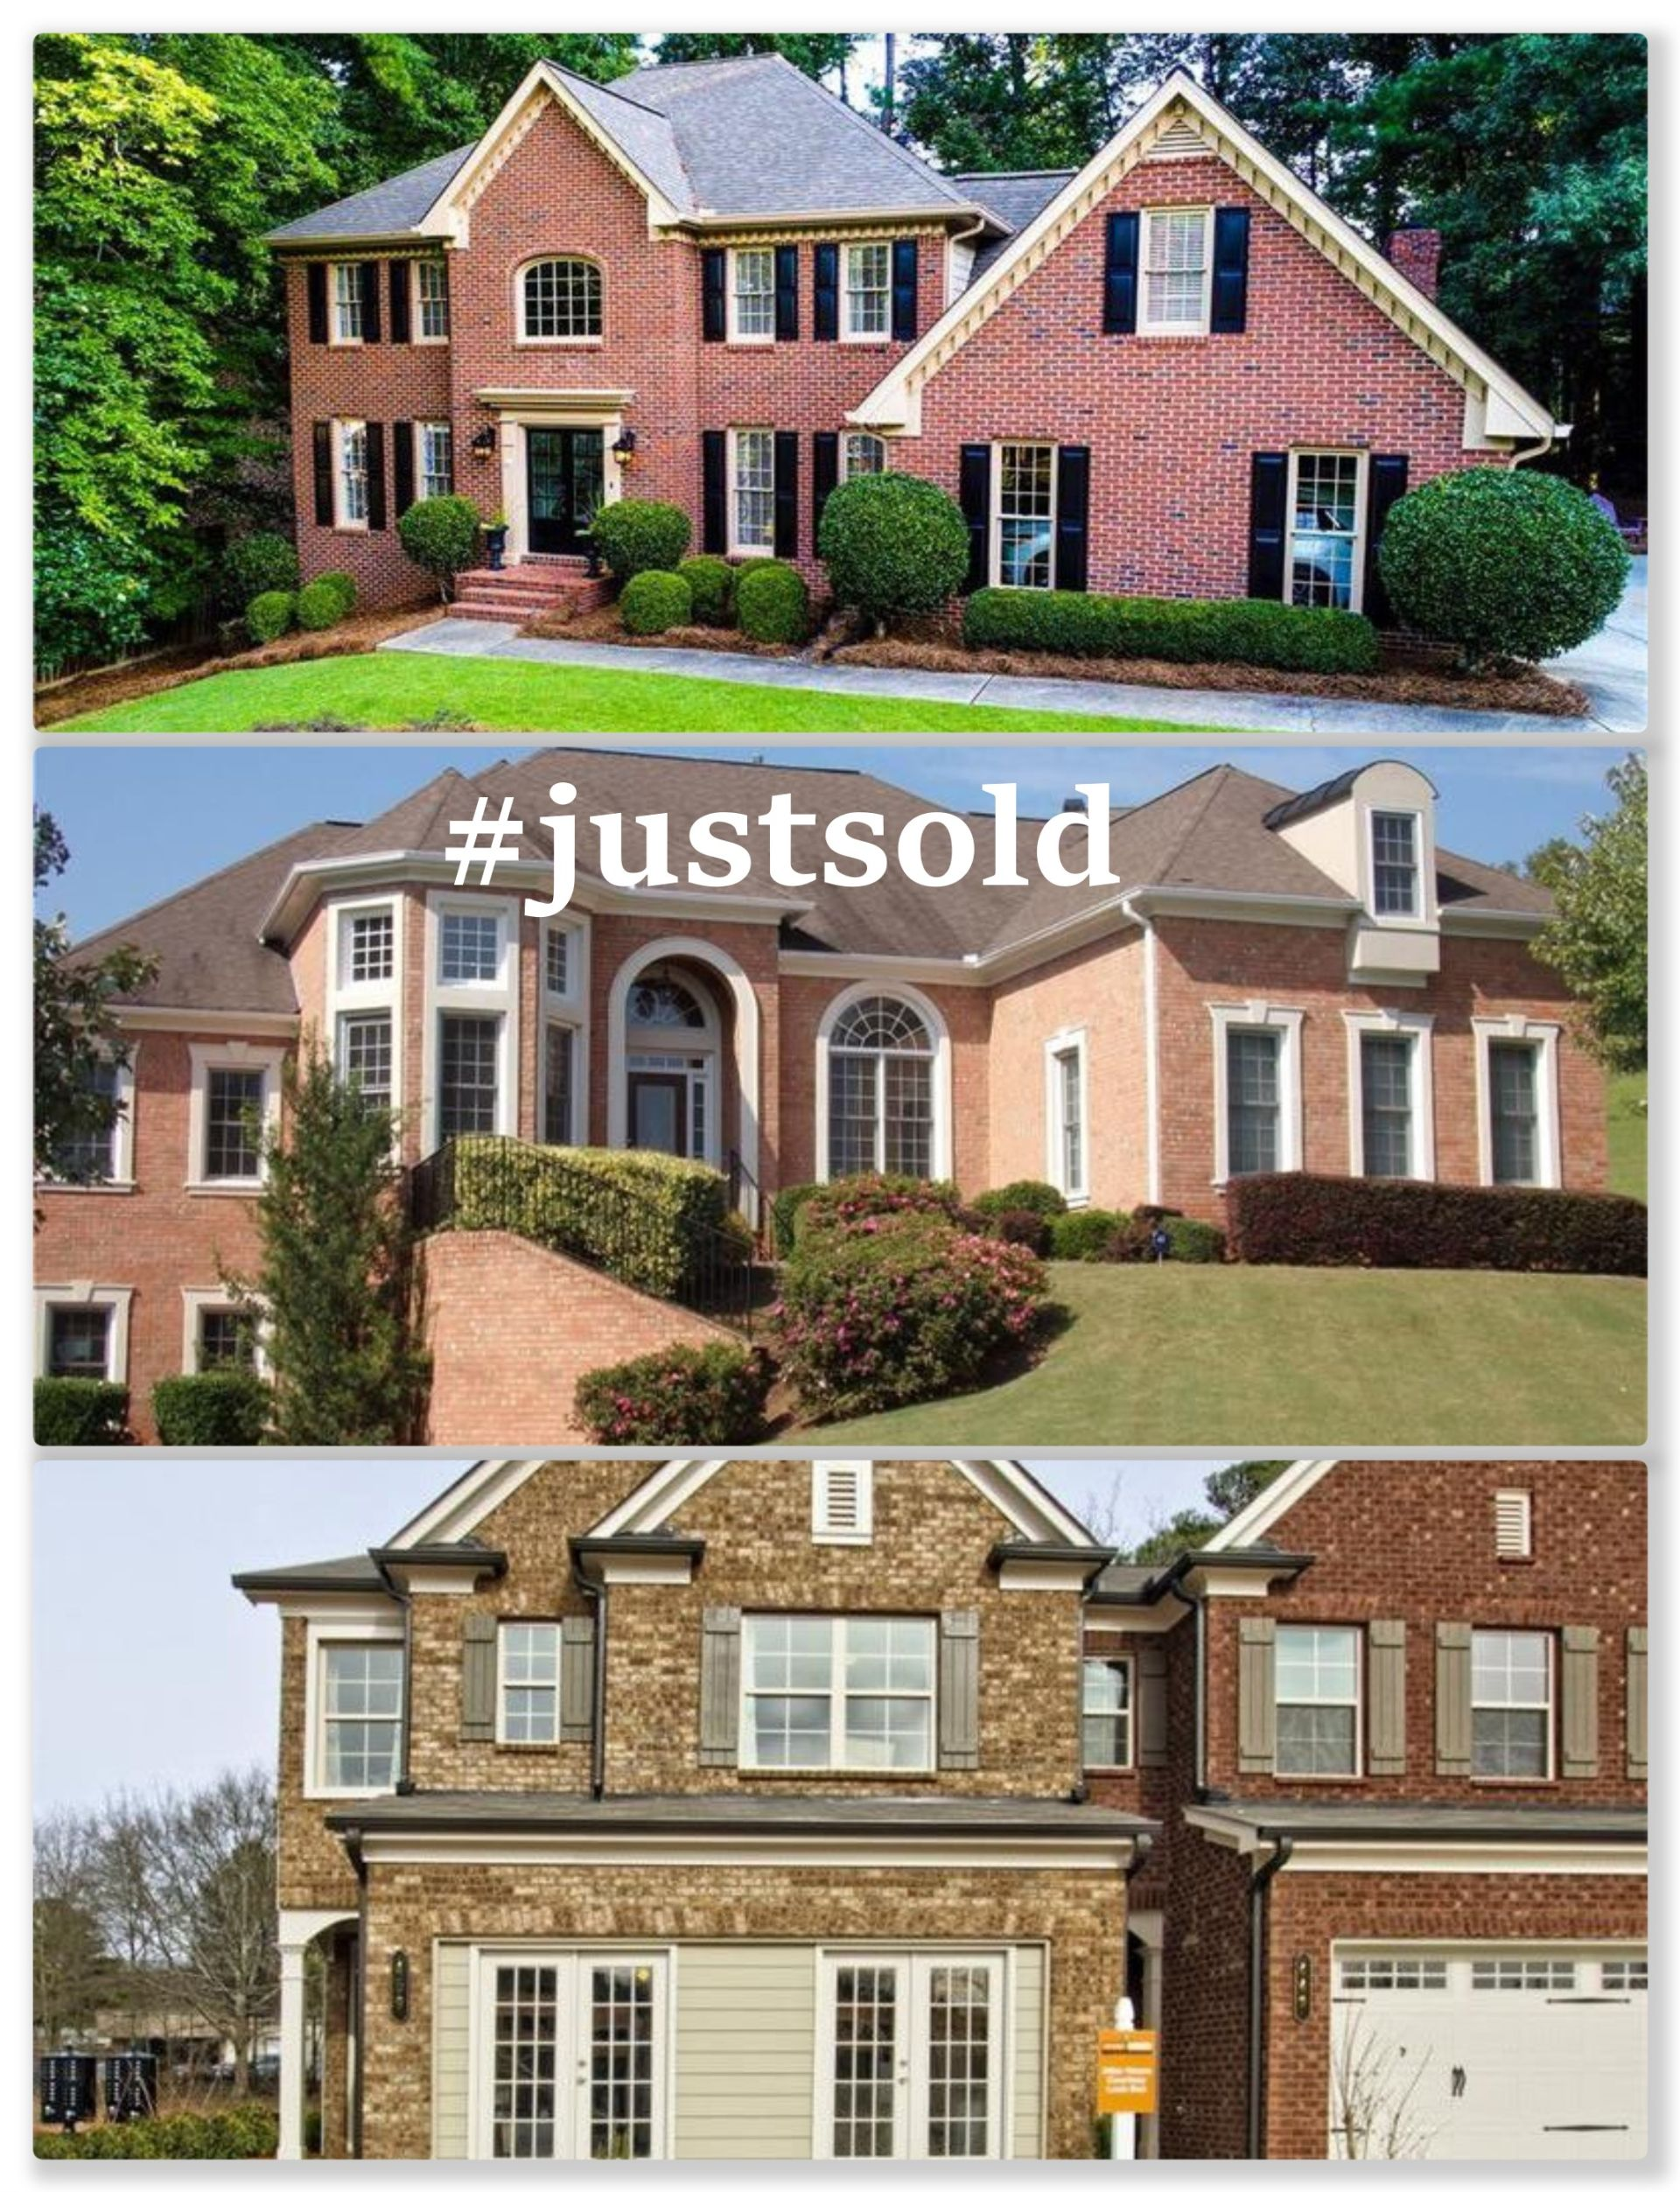 #justsold in Johns Creek, Atlanta, and Lawrenceville!